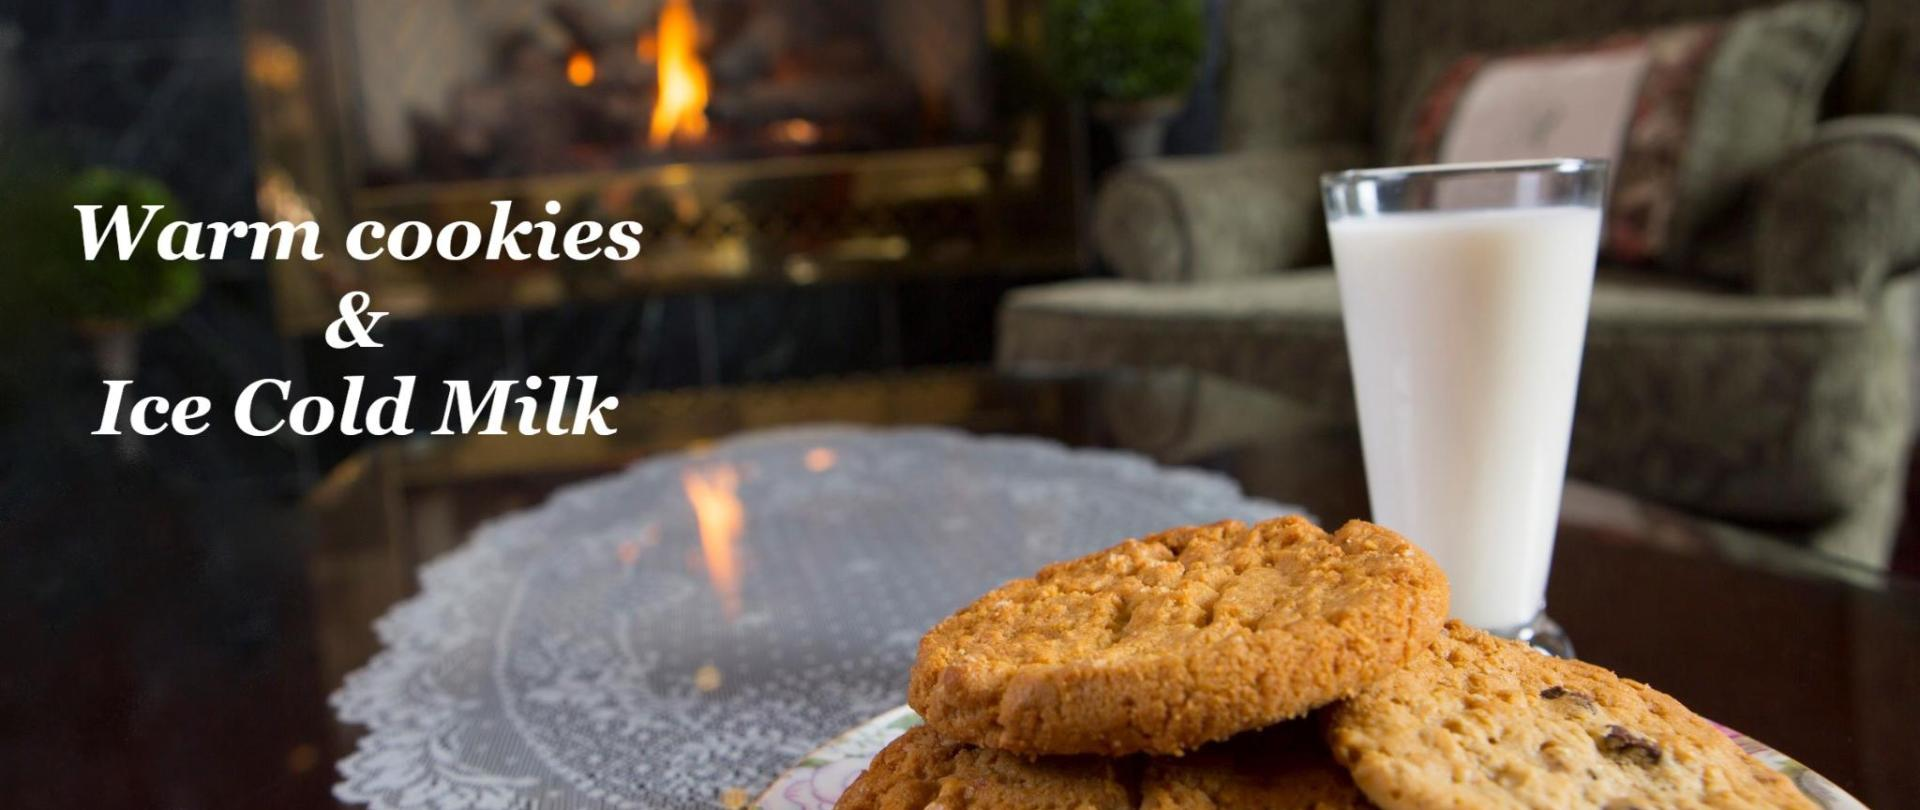 Warm Cookies-Milk.jpg